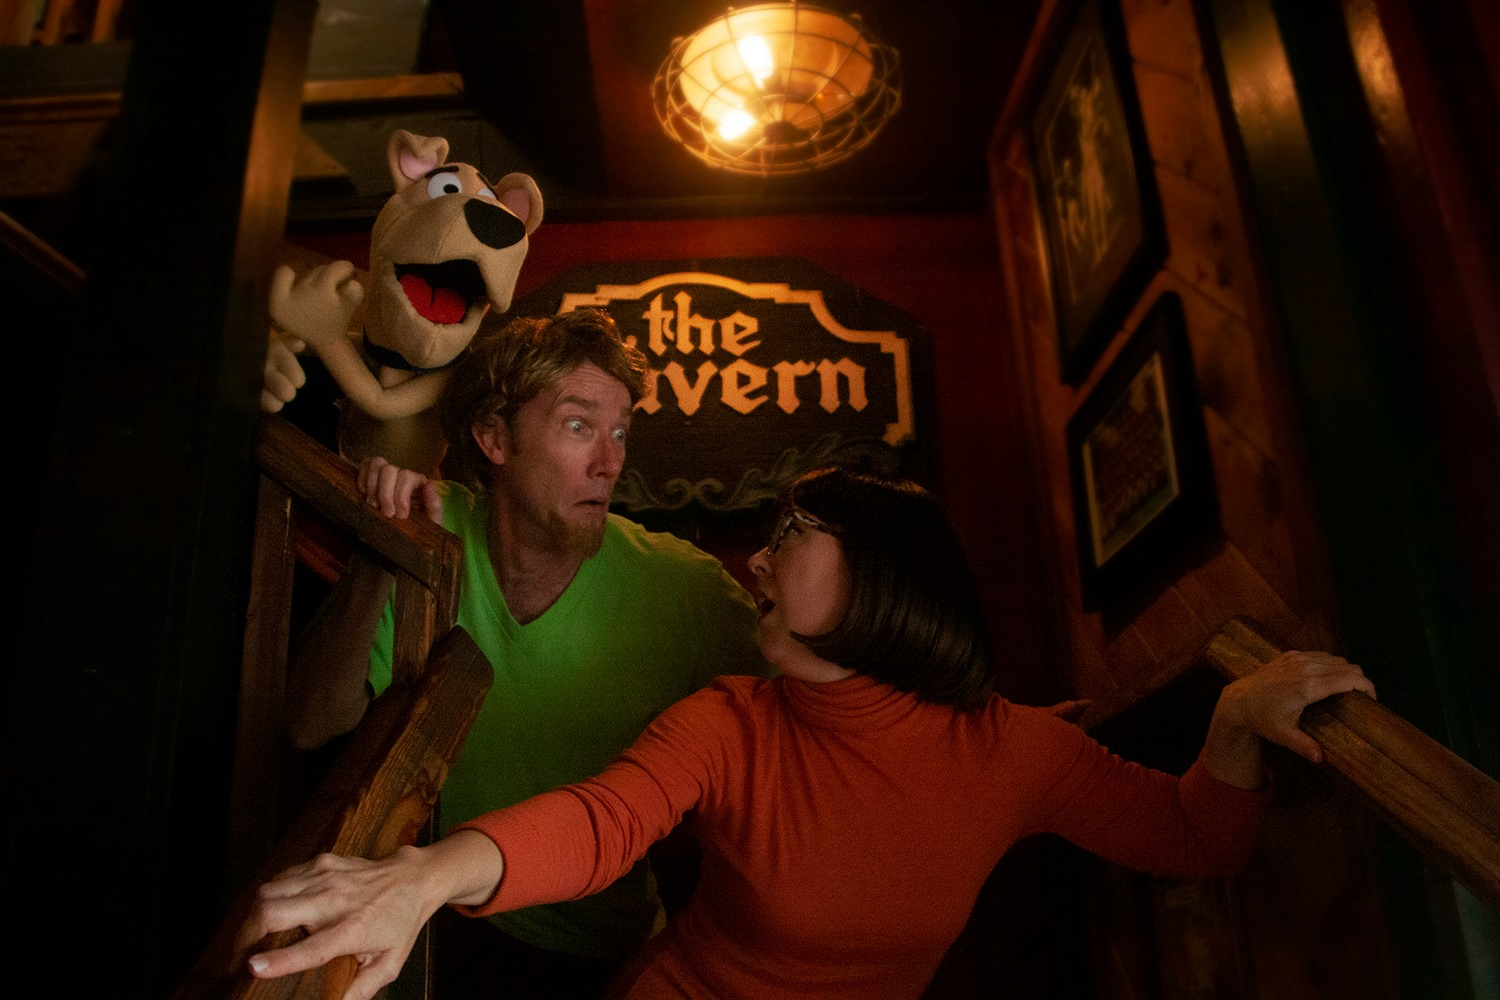 The Haunting of the Tavern